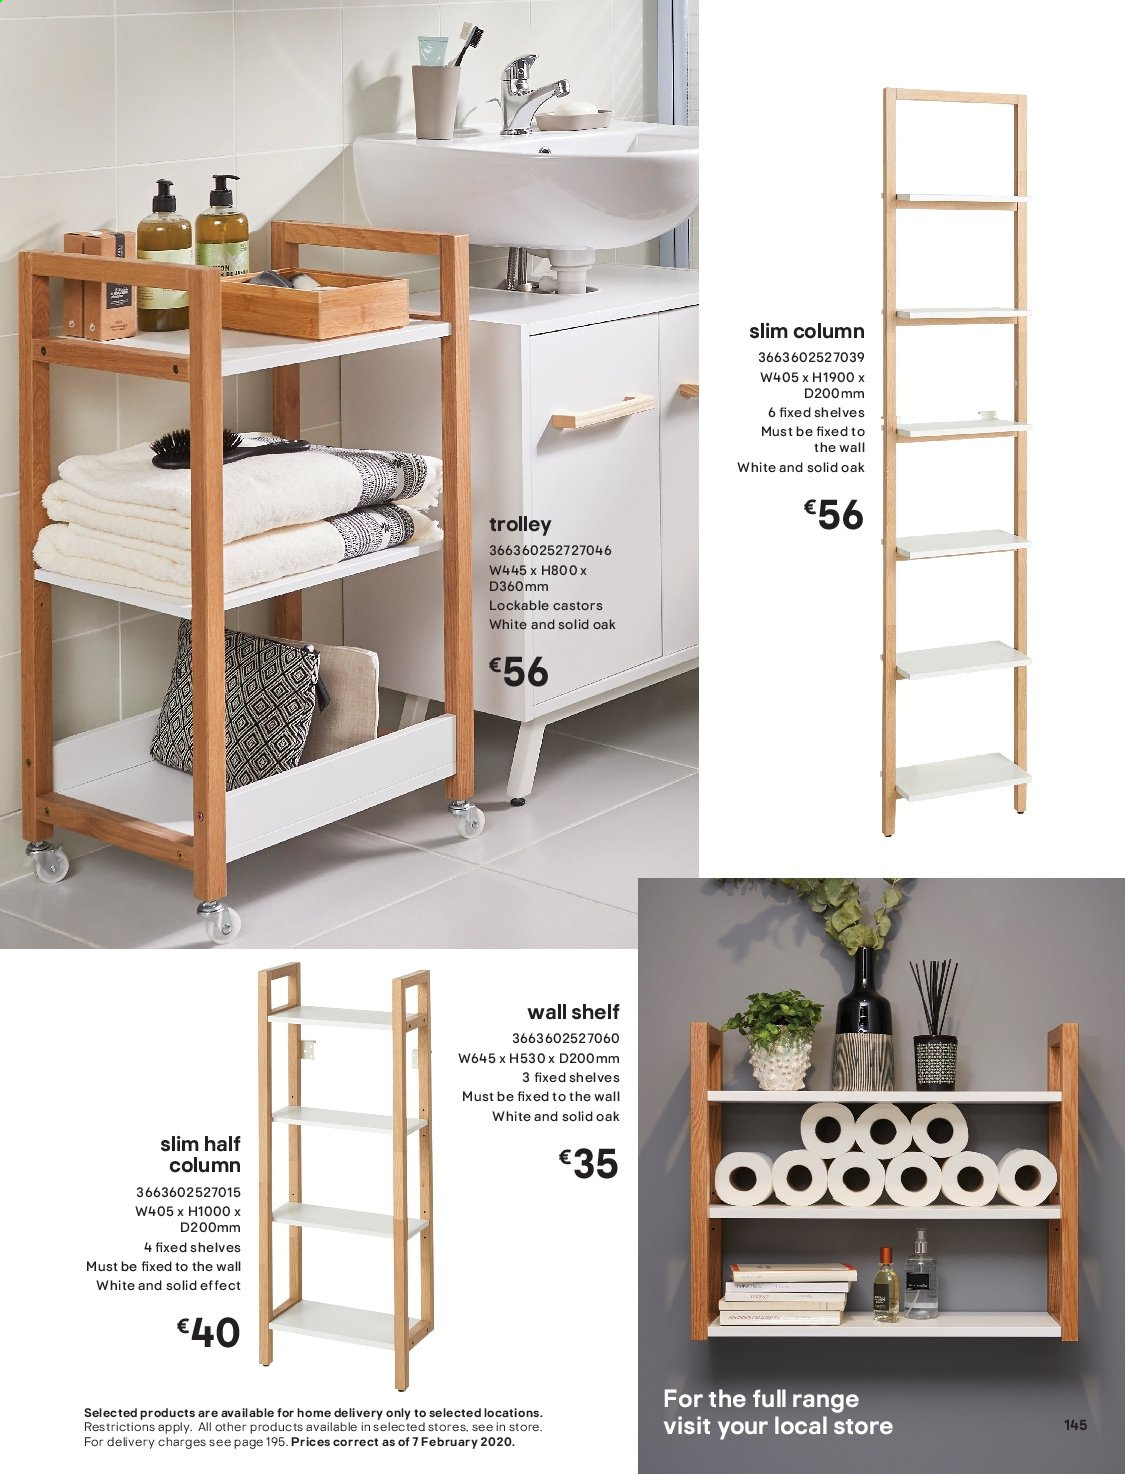 B&Q offer  - Sales products - shelves, solid, wall shelf, trolley. Page 145.